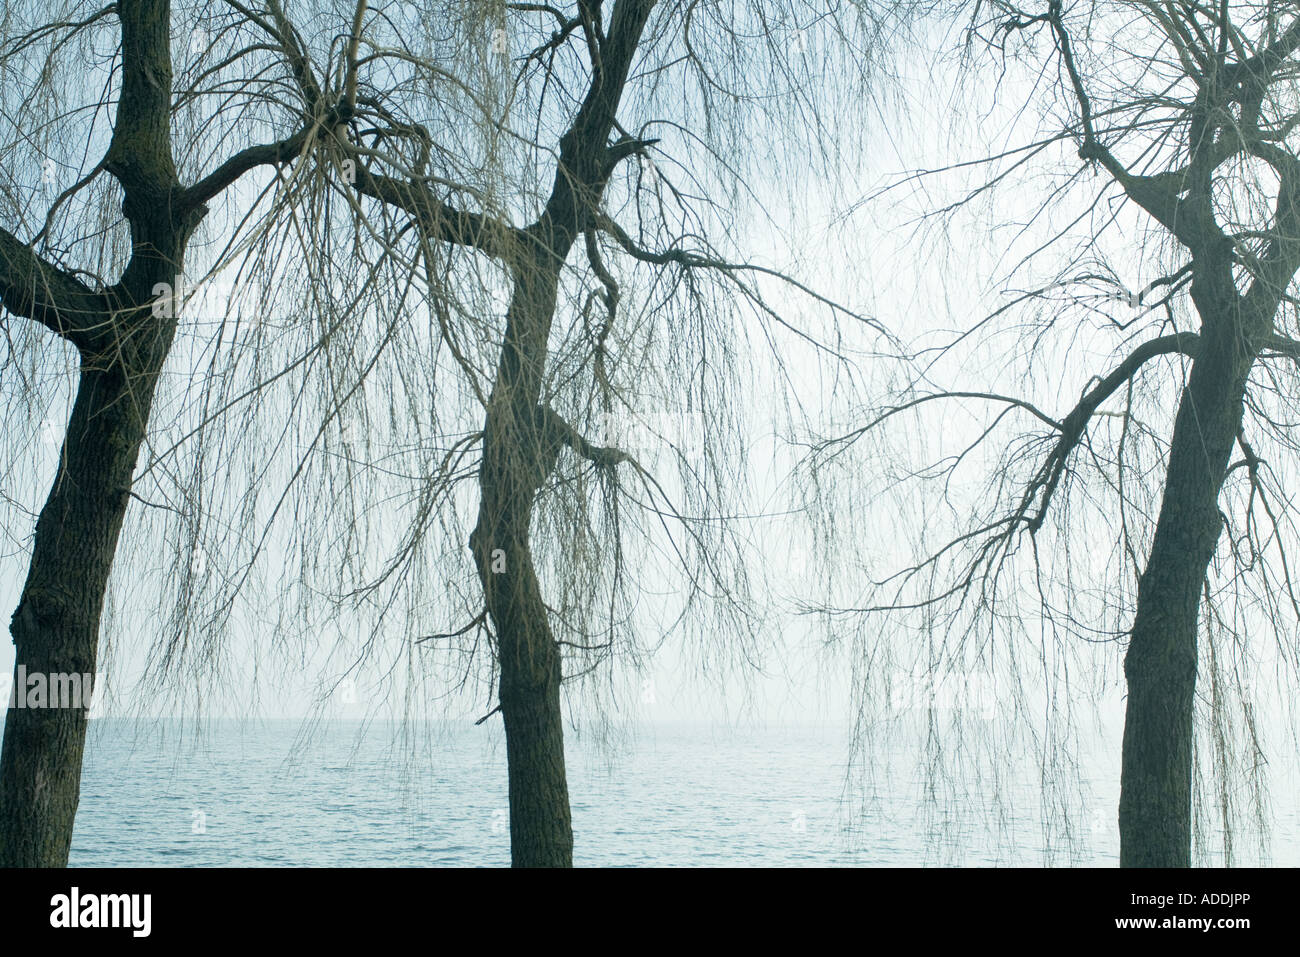 Bare trees, water in background - Stock Image